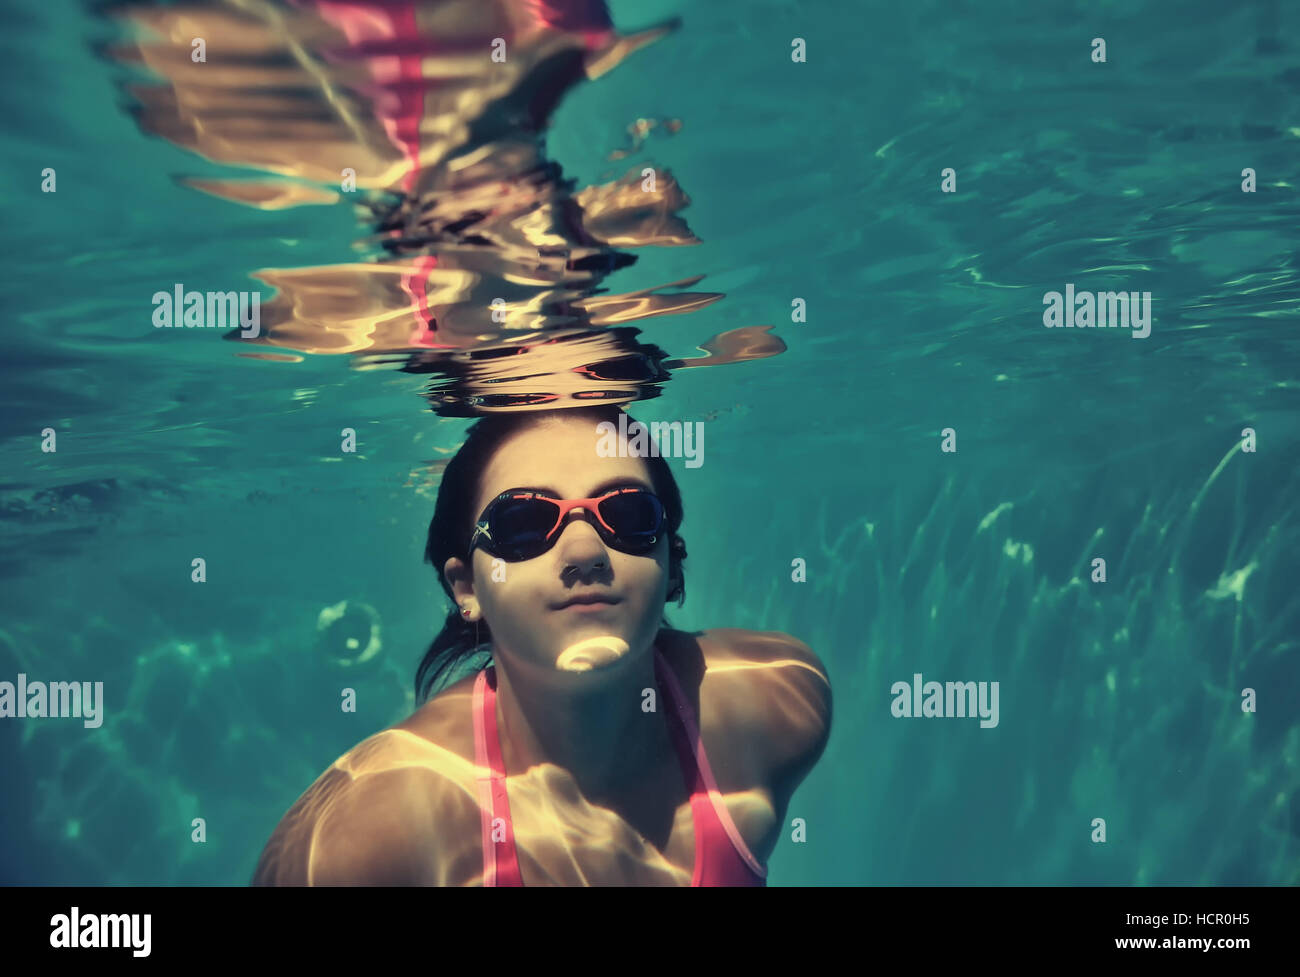 Girl swimming underwater in pool. - Stock Image